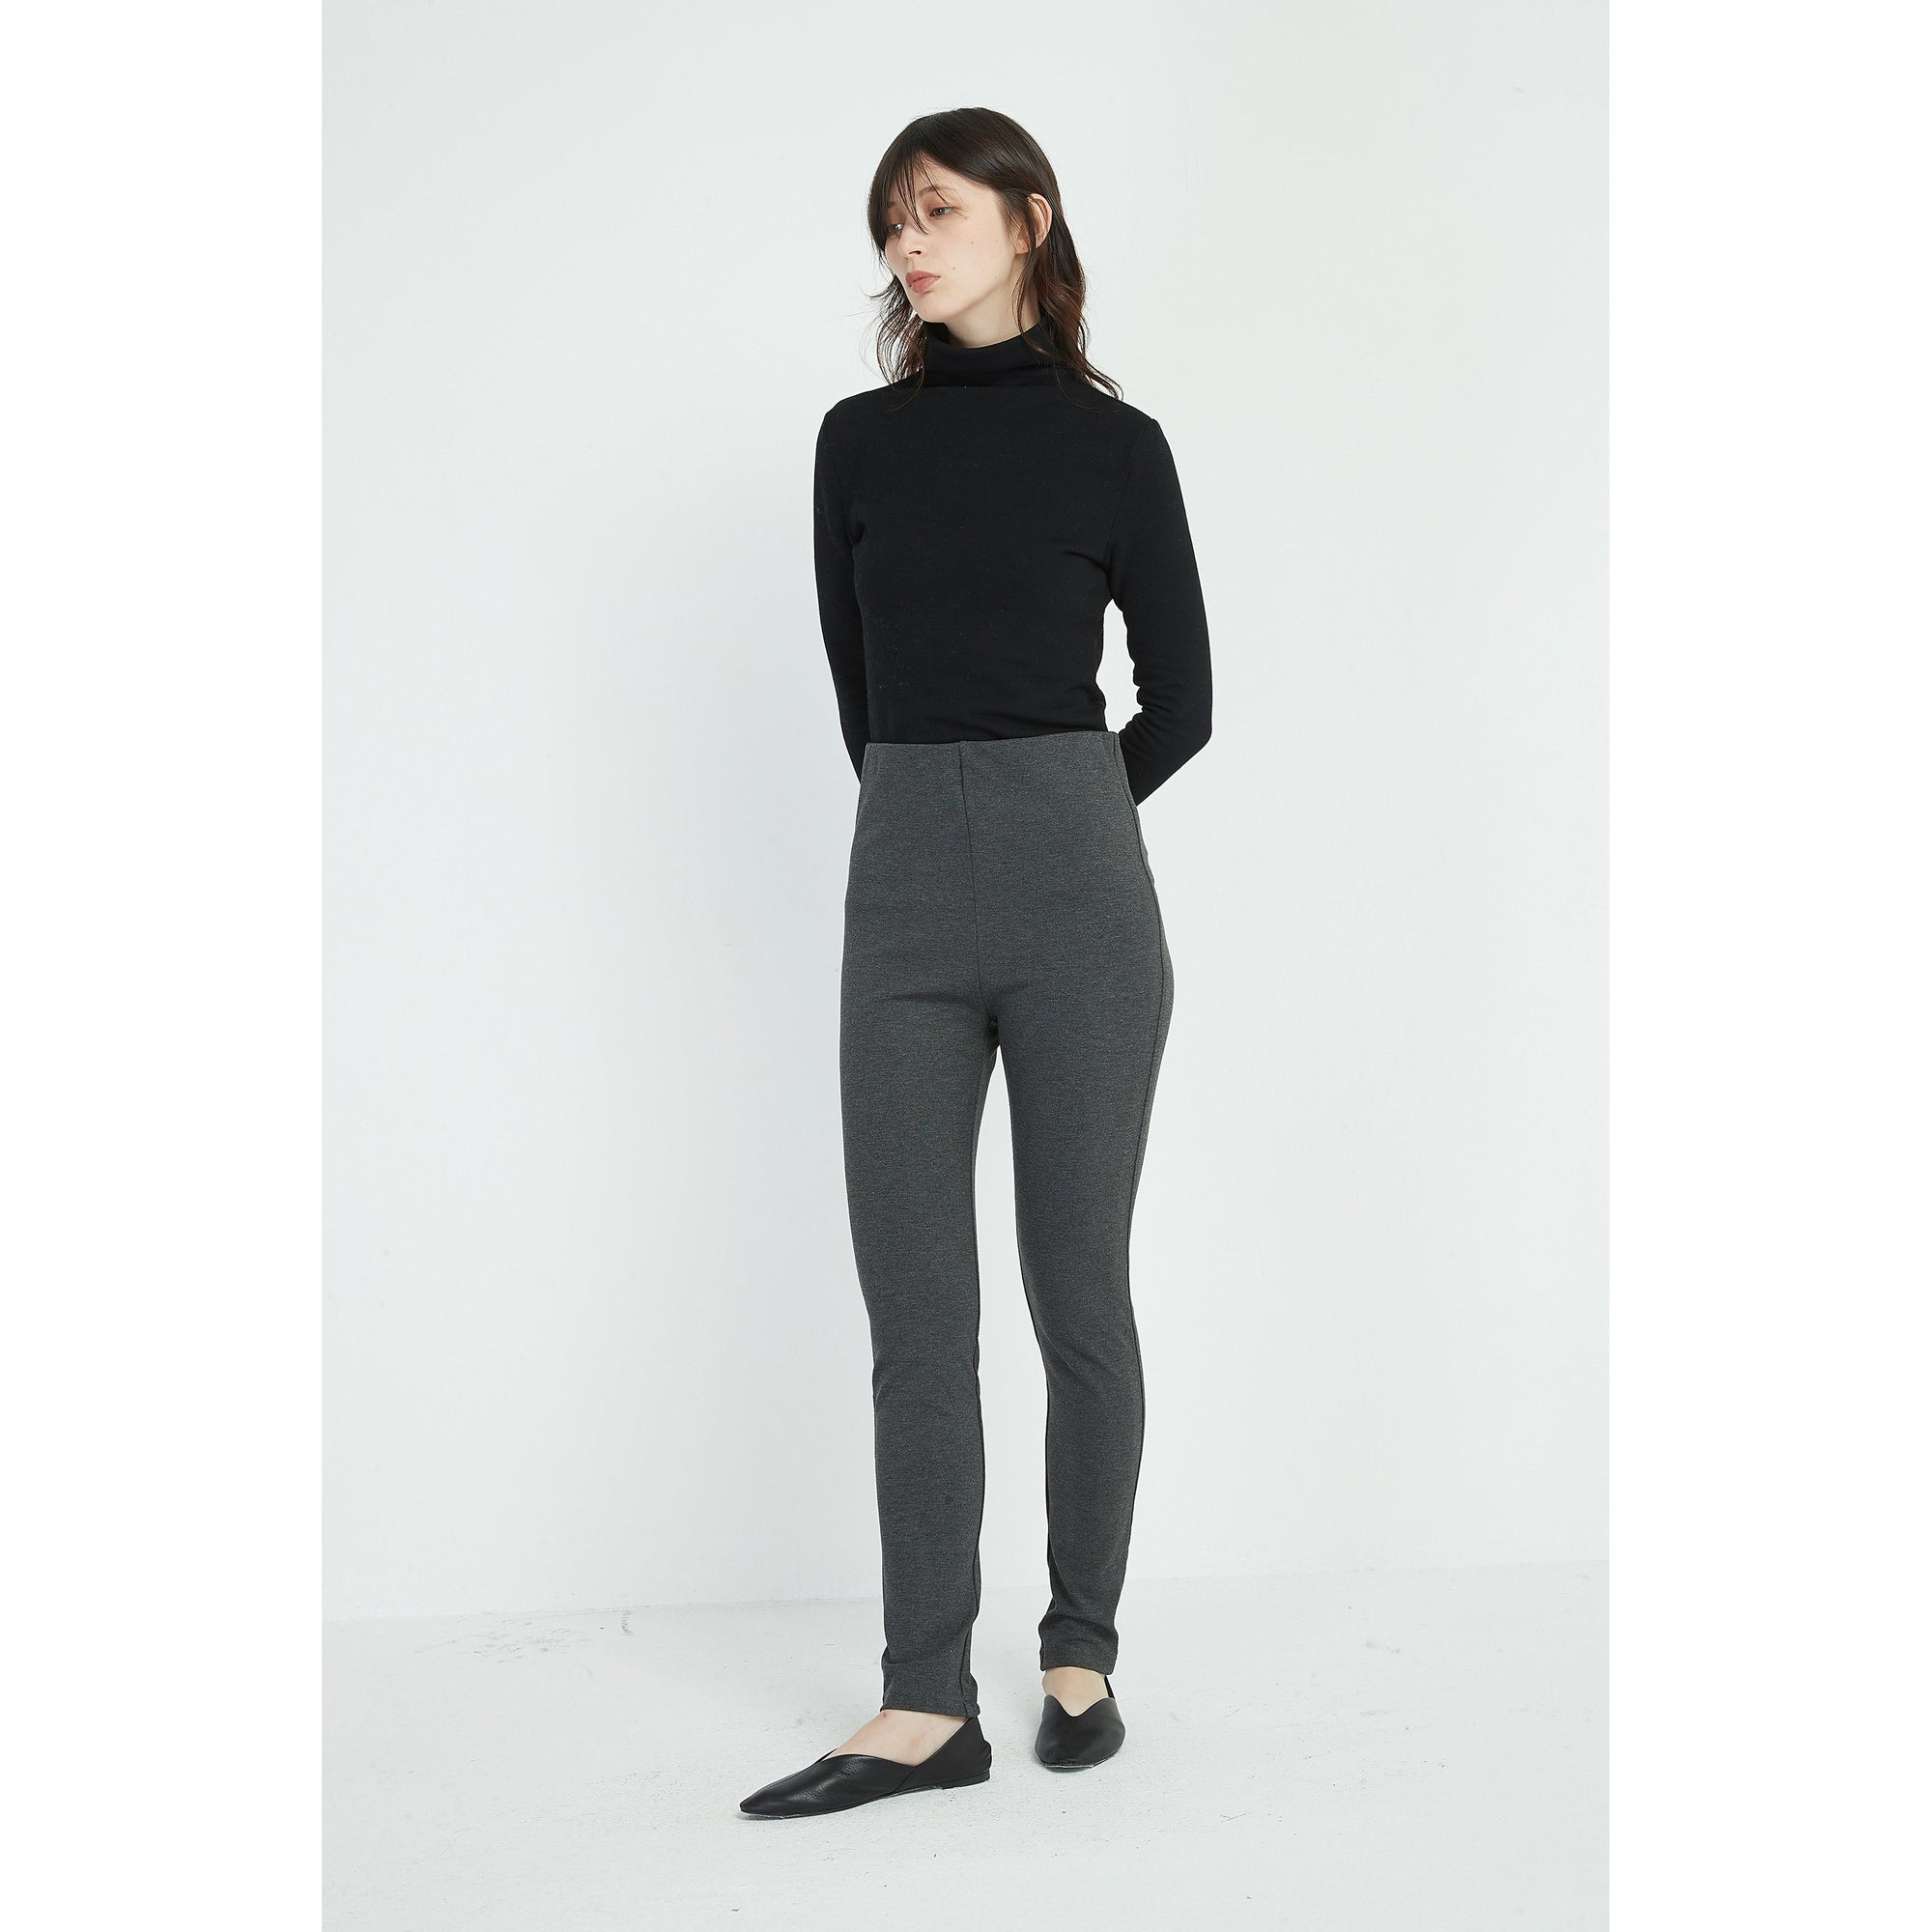 Tirelli Winter Legging in Charcoal